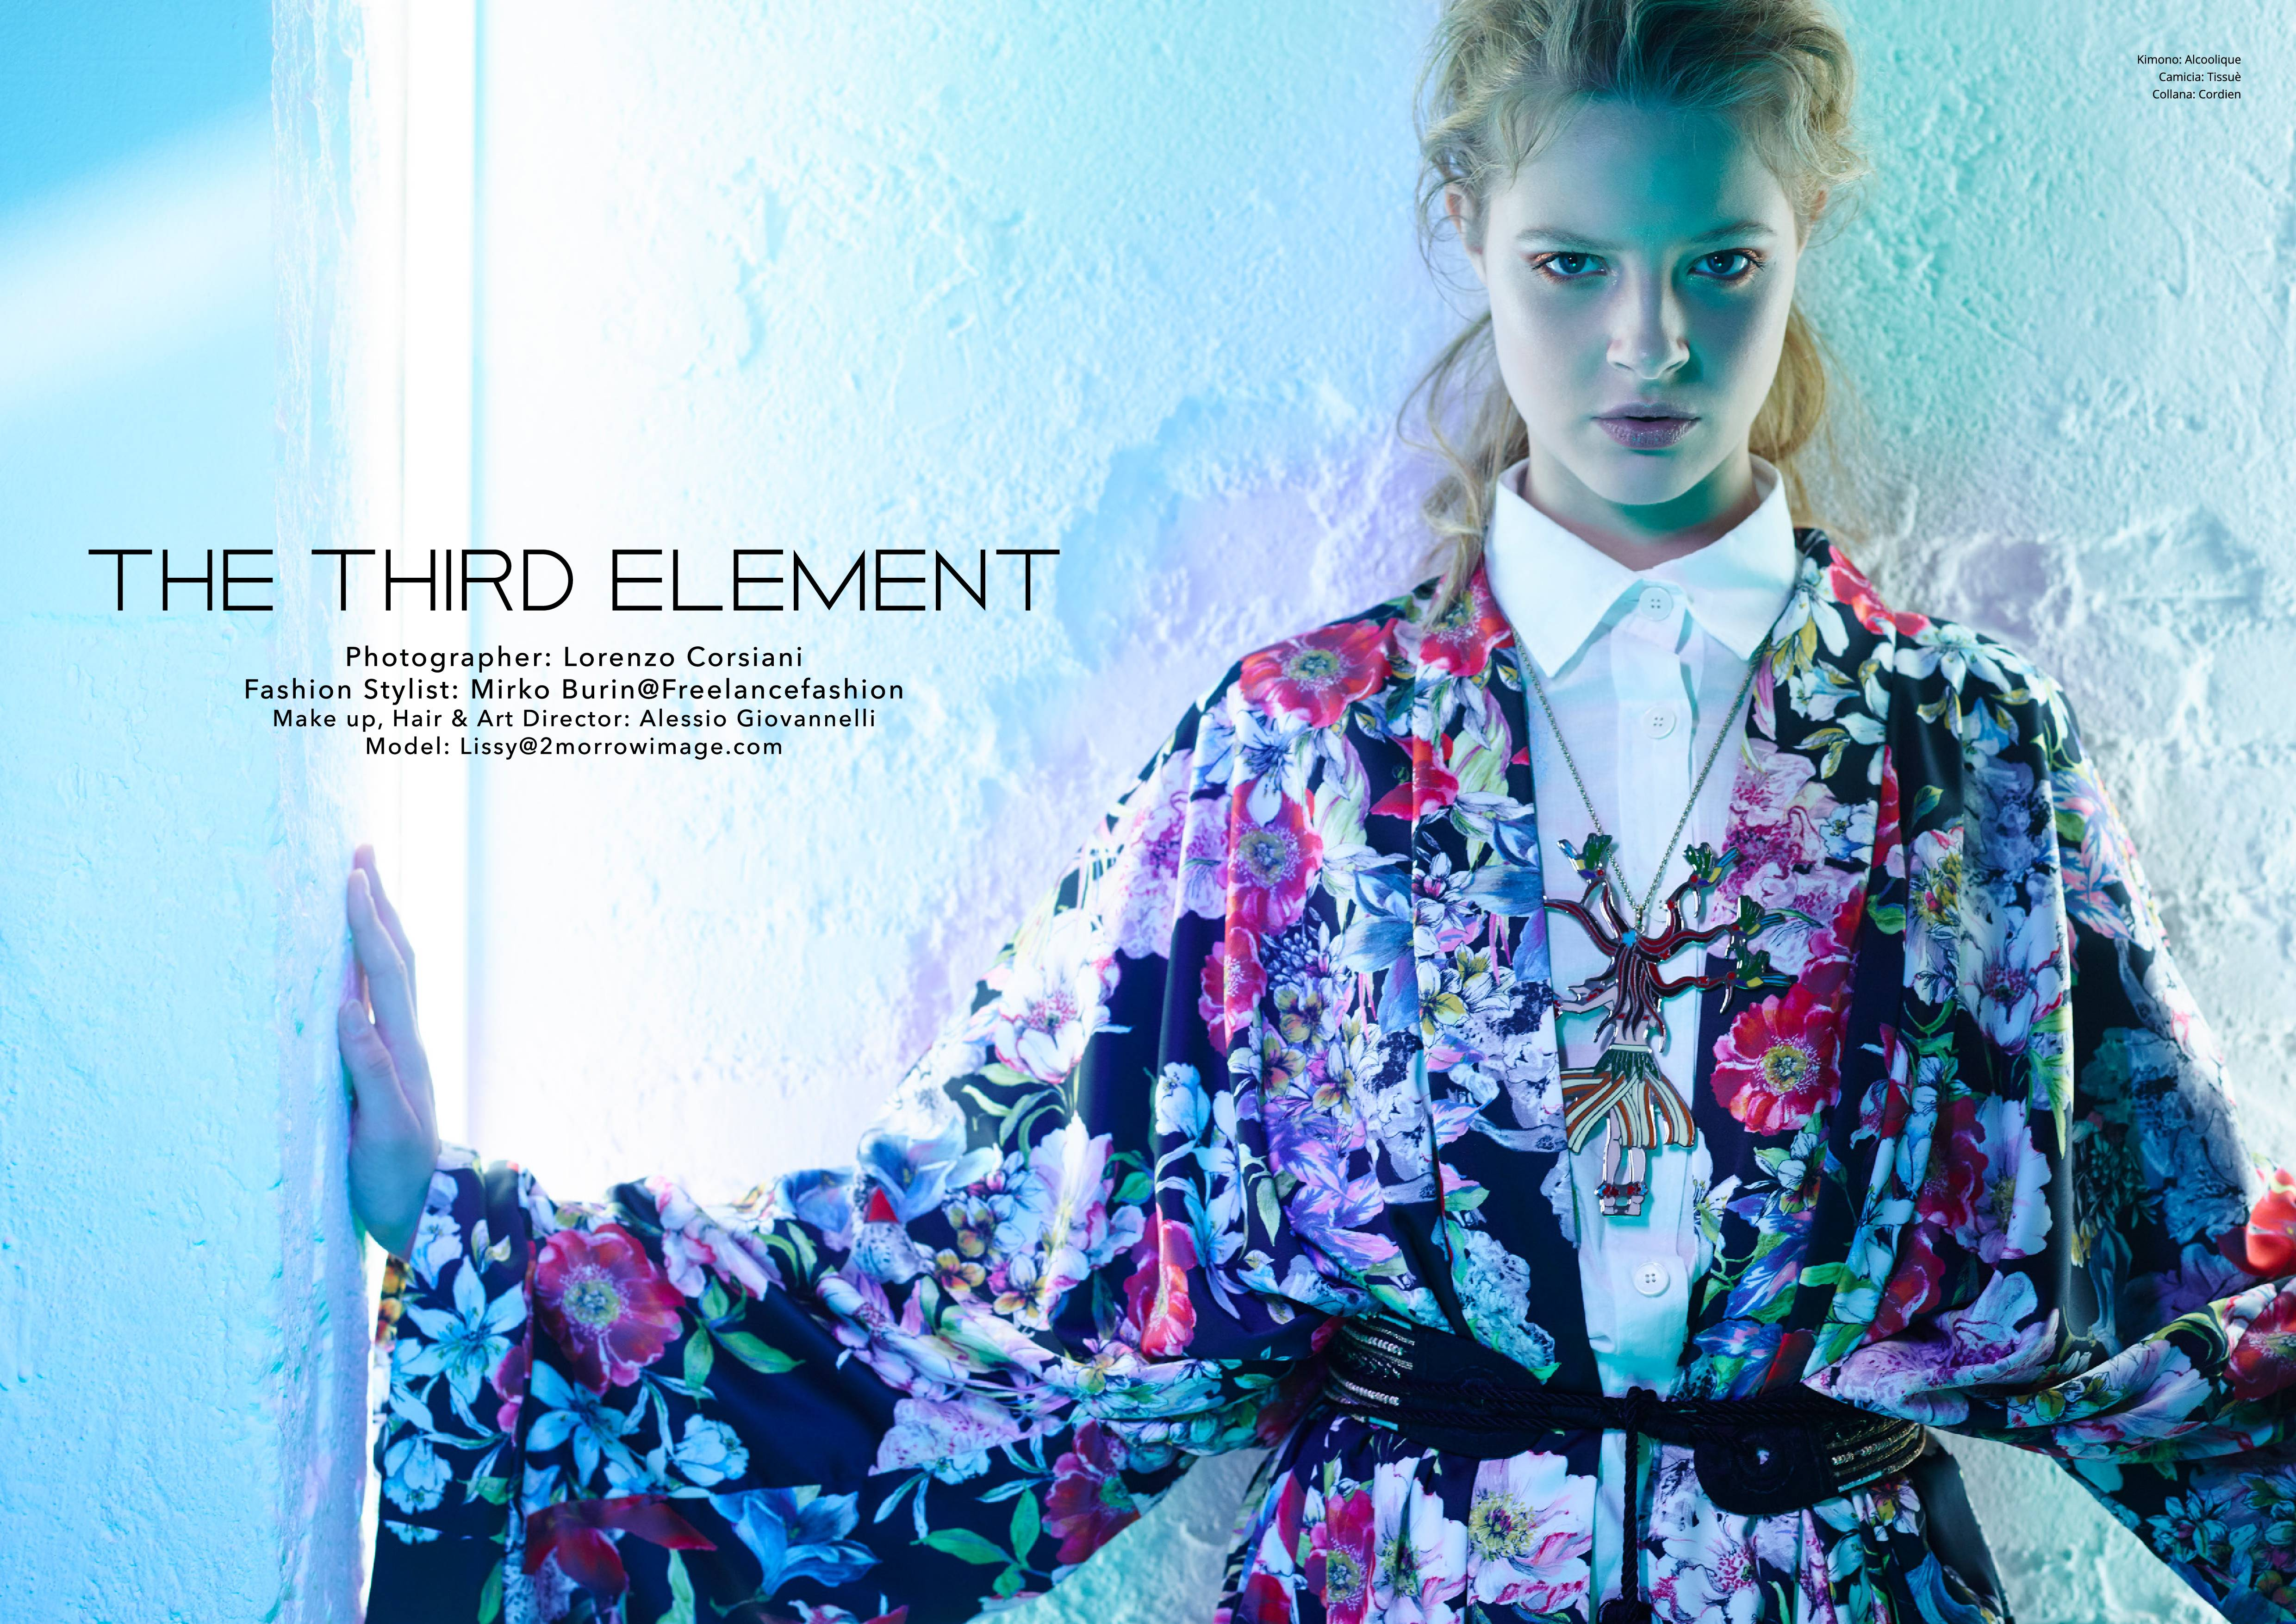 Switch Magazine The Thord Element by Mirko Burin Fashion Stylist